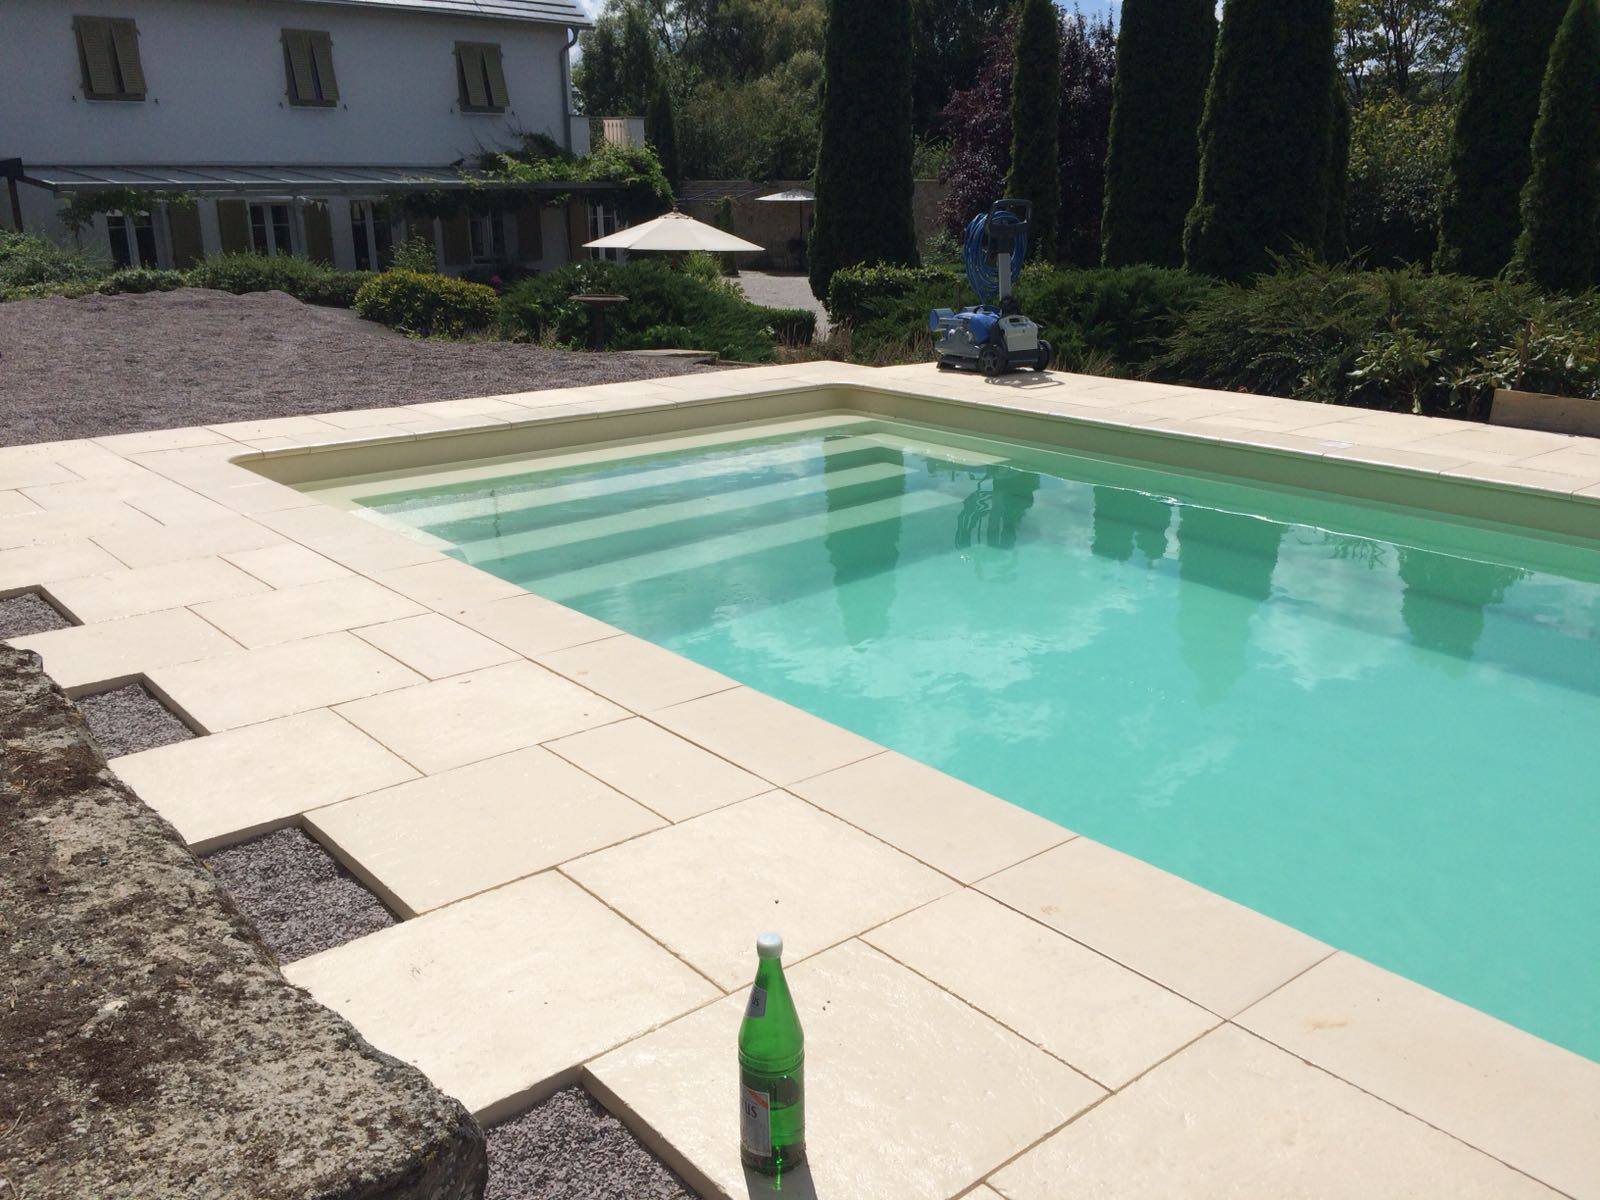 GFK-Pools in Schotter einbauen - funktioniert! - 123swimmingpool ...